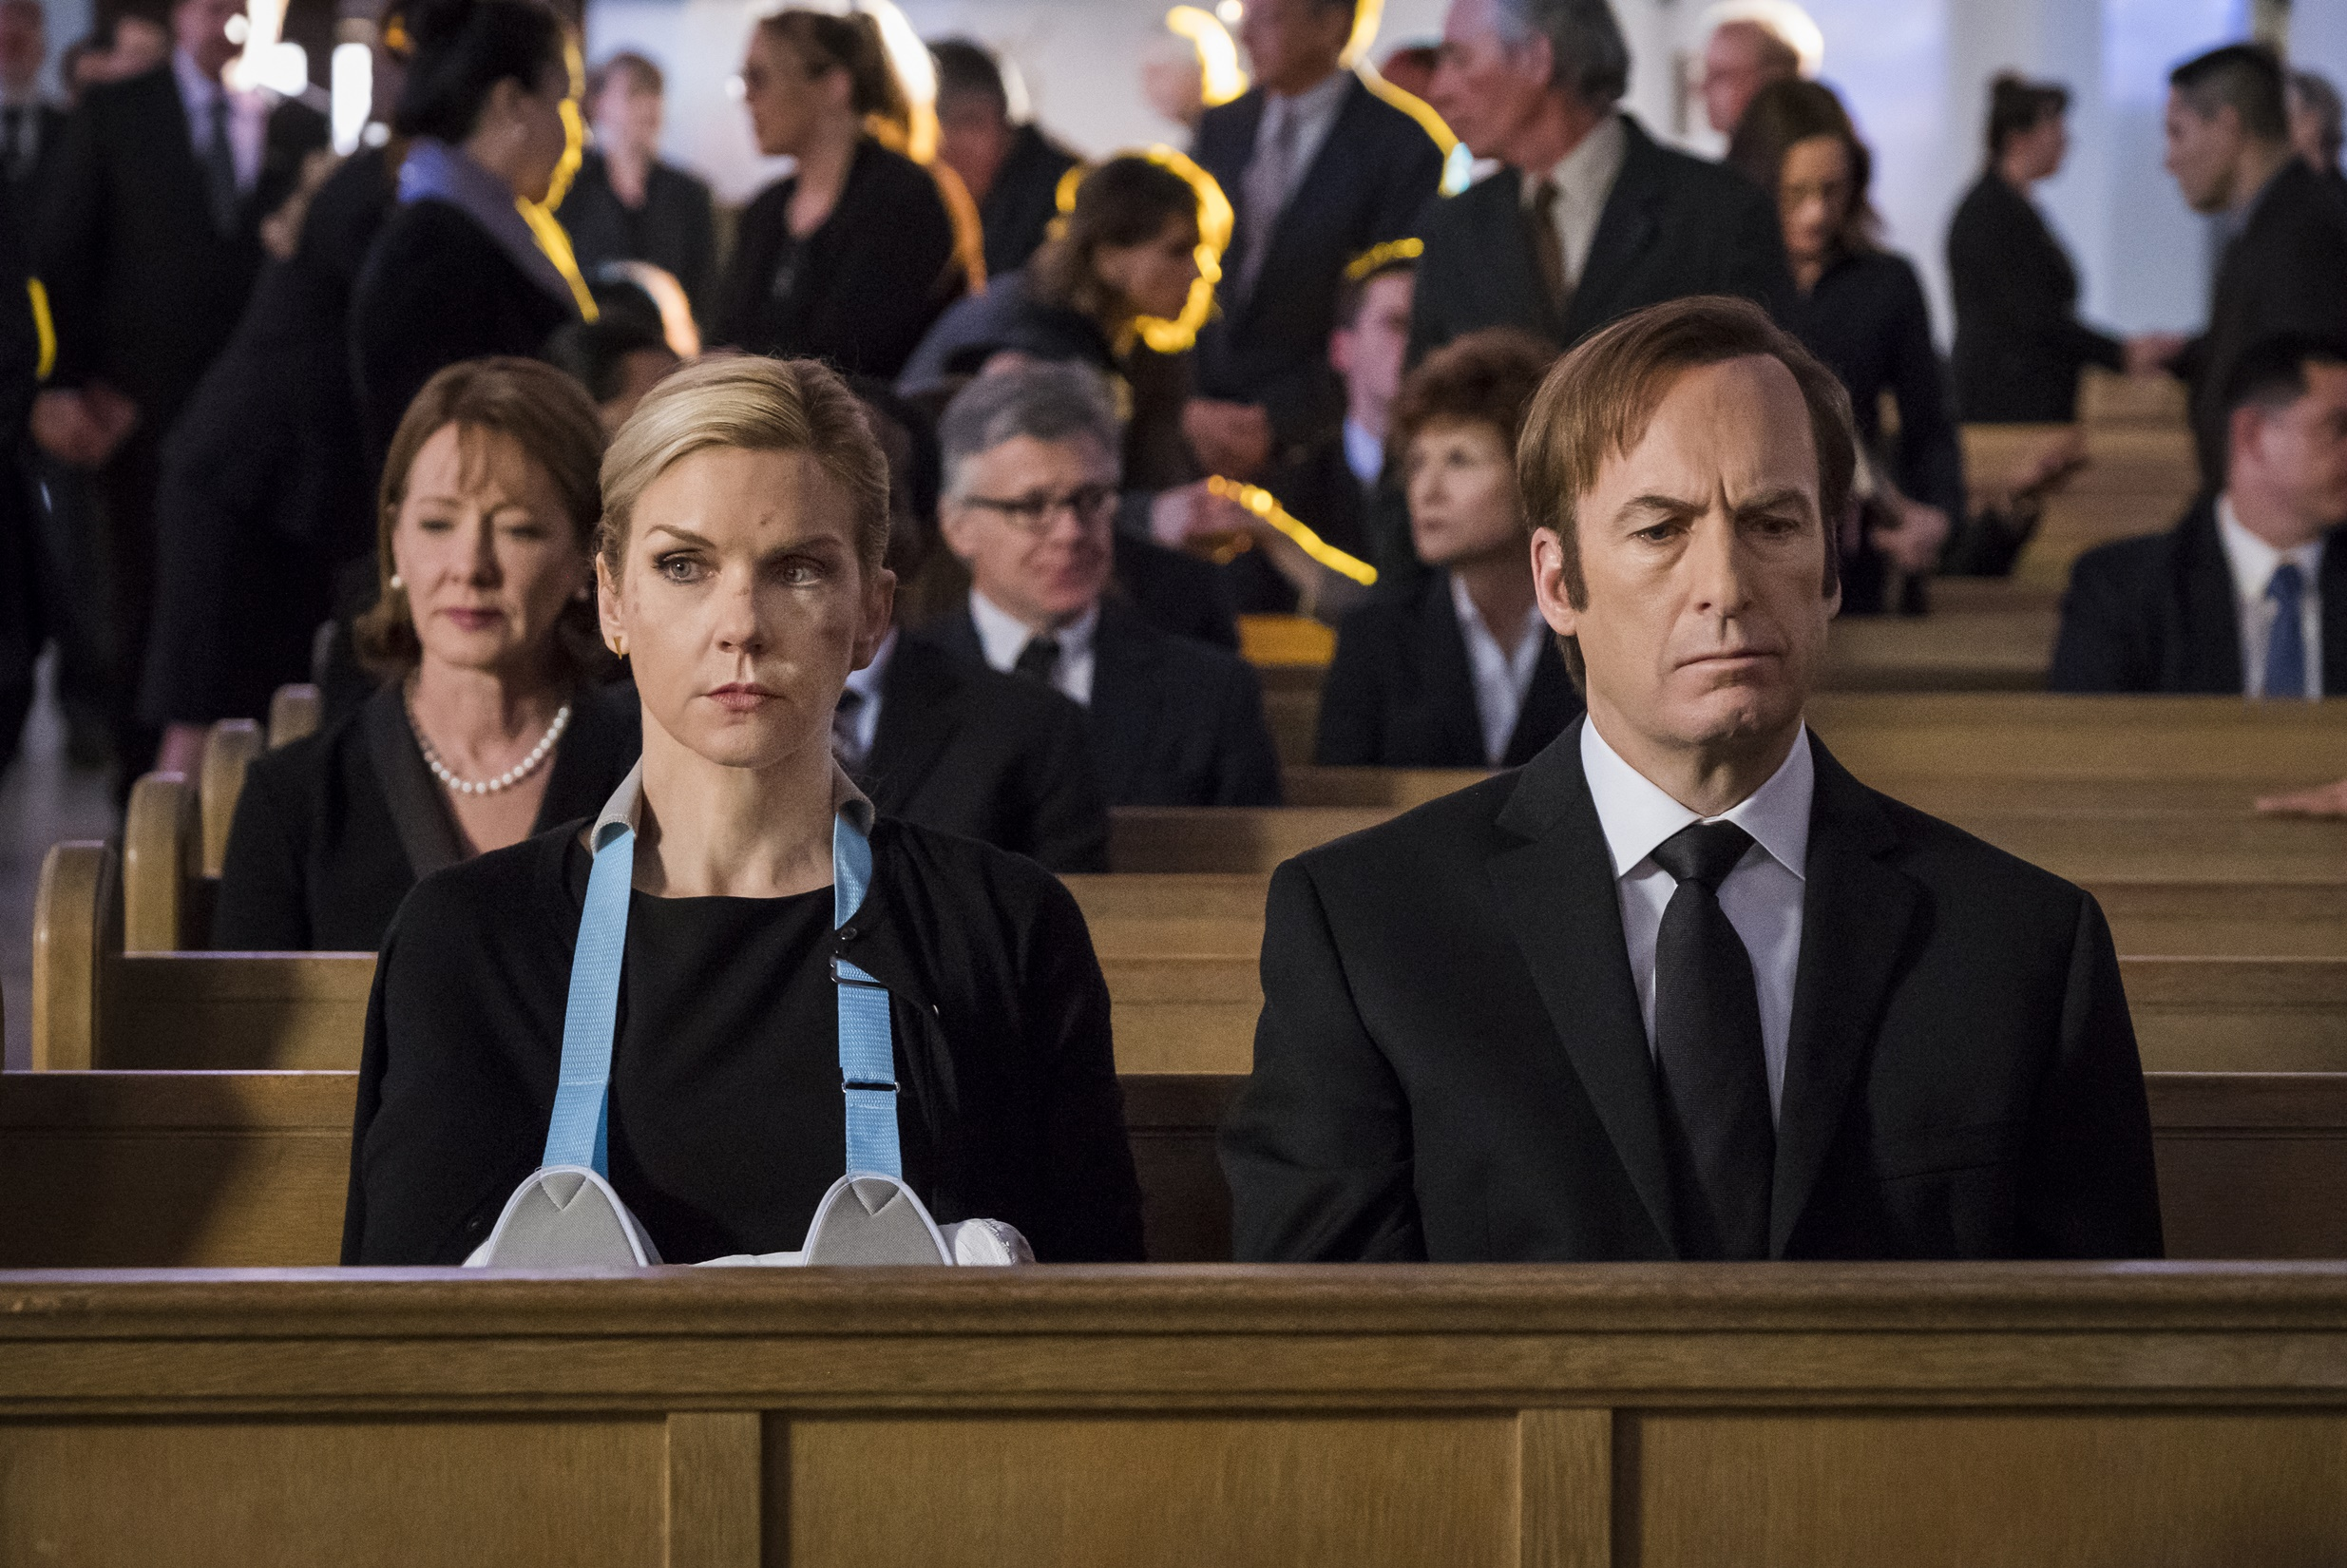 20180728_BetterCallSaul_401.jpg